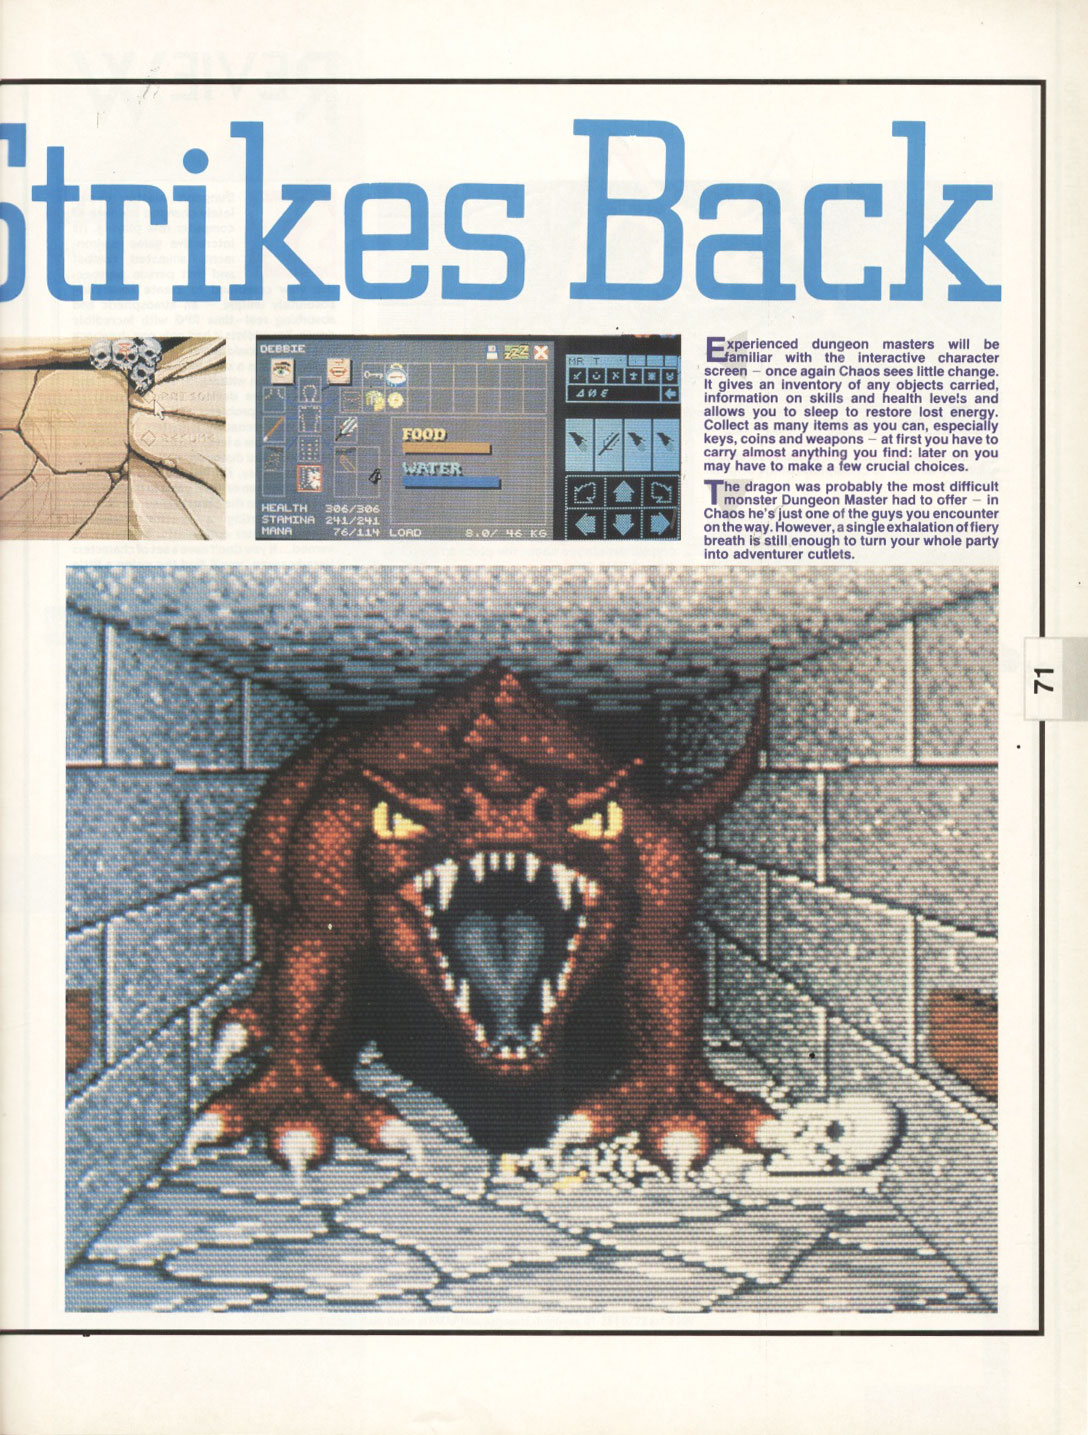 Chaos Strikes Back for Atari ST Review published in British magazine 'The One for 16-bits games', Issue #17, February 1990, Pages 71